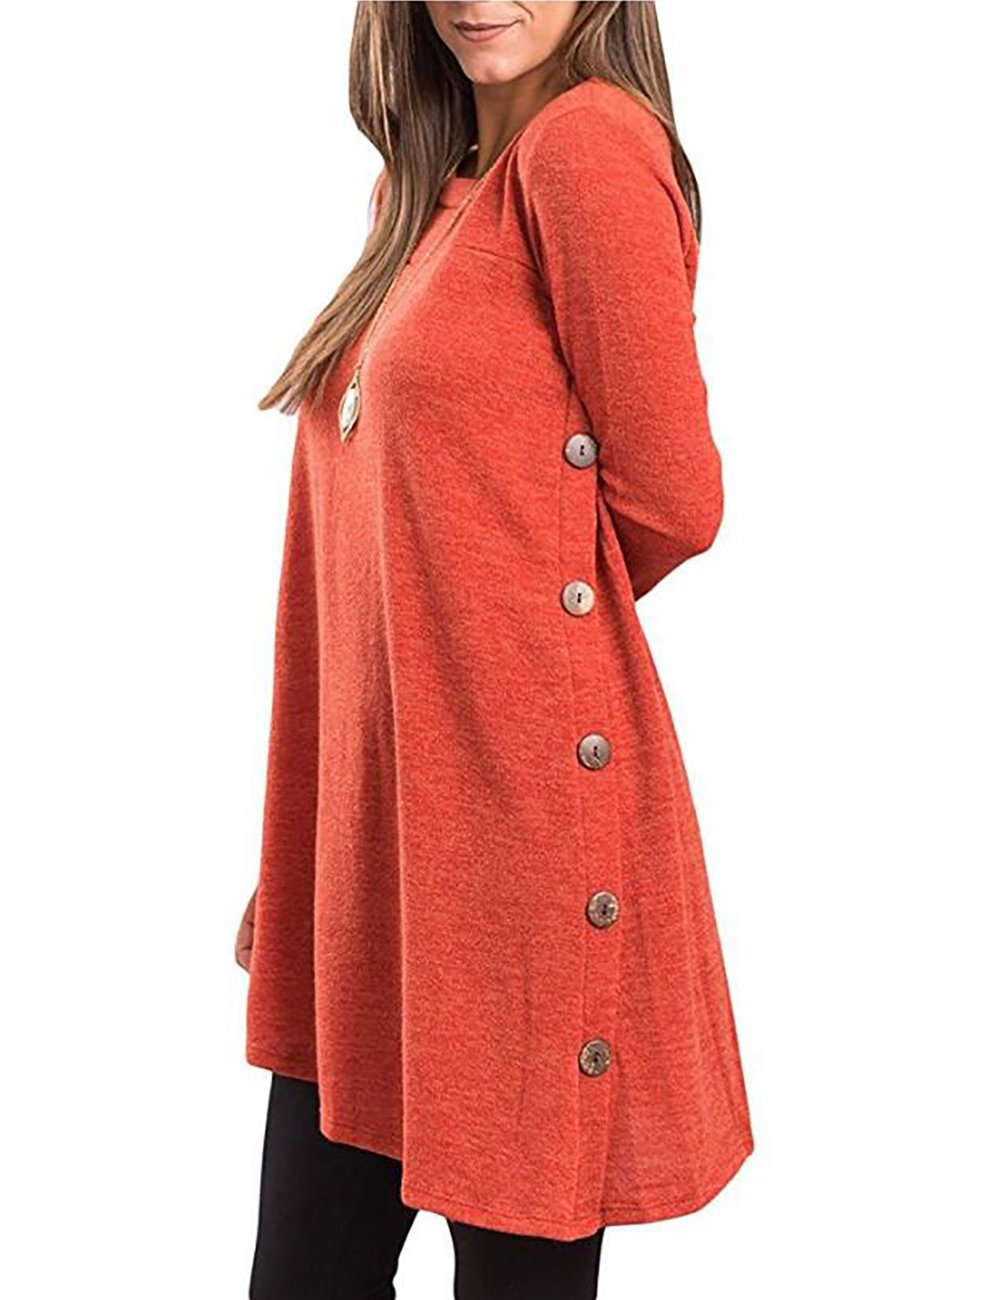 Sanifer Women's Casual Long Sleeve Loose Tunic Dress for Leggings with Buttons (Orange, XX-Large)